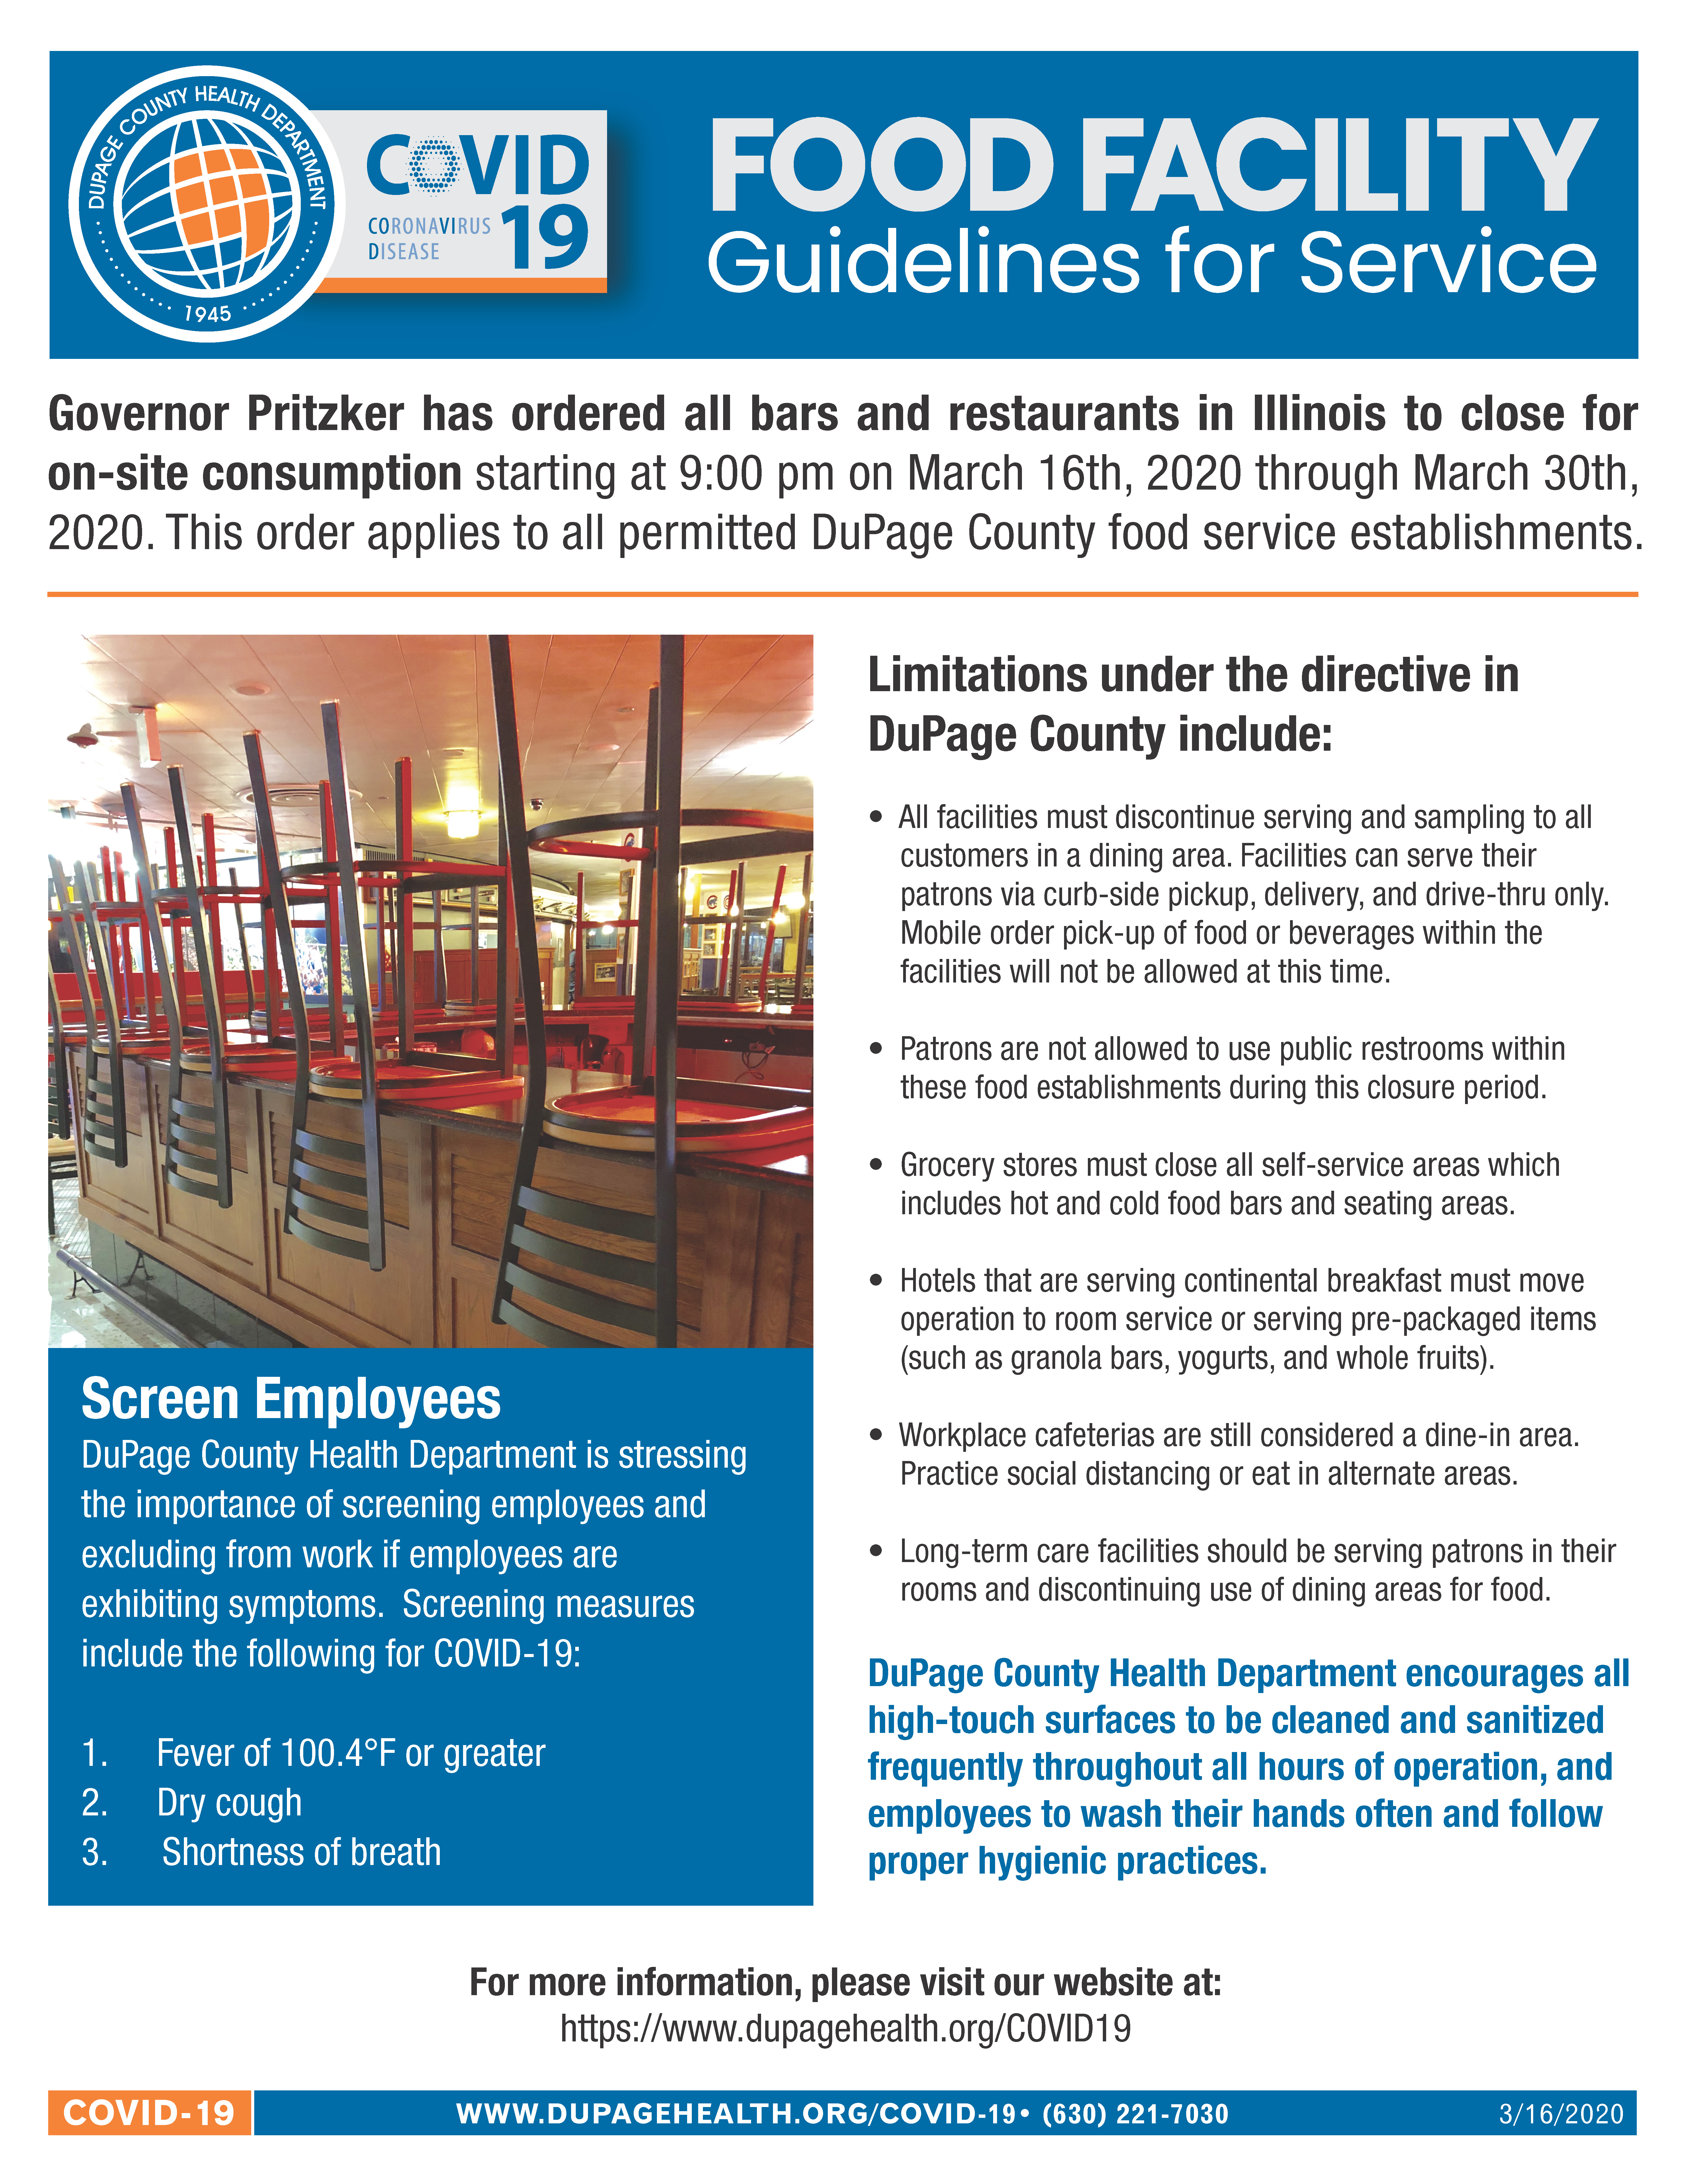 DCHD - COVID-19 Food Facilities Guidelines for Service (3-16)